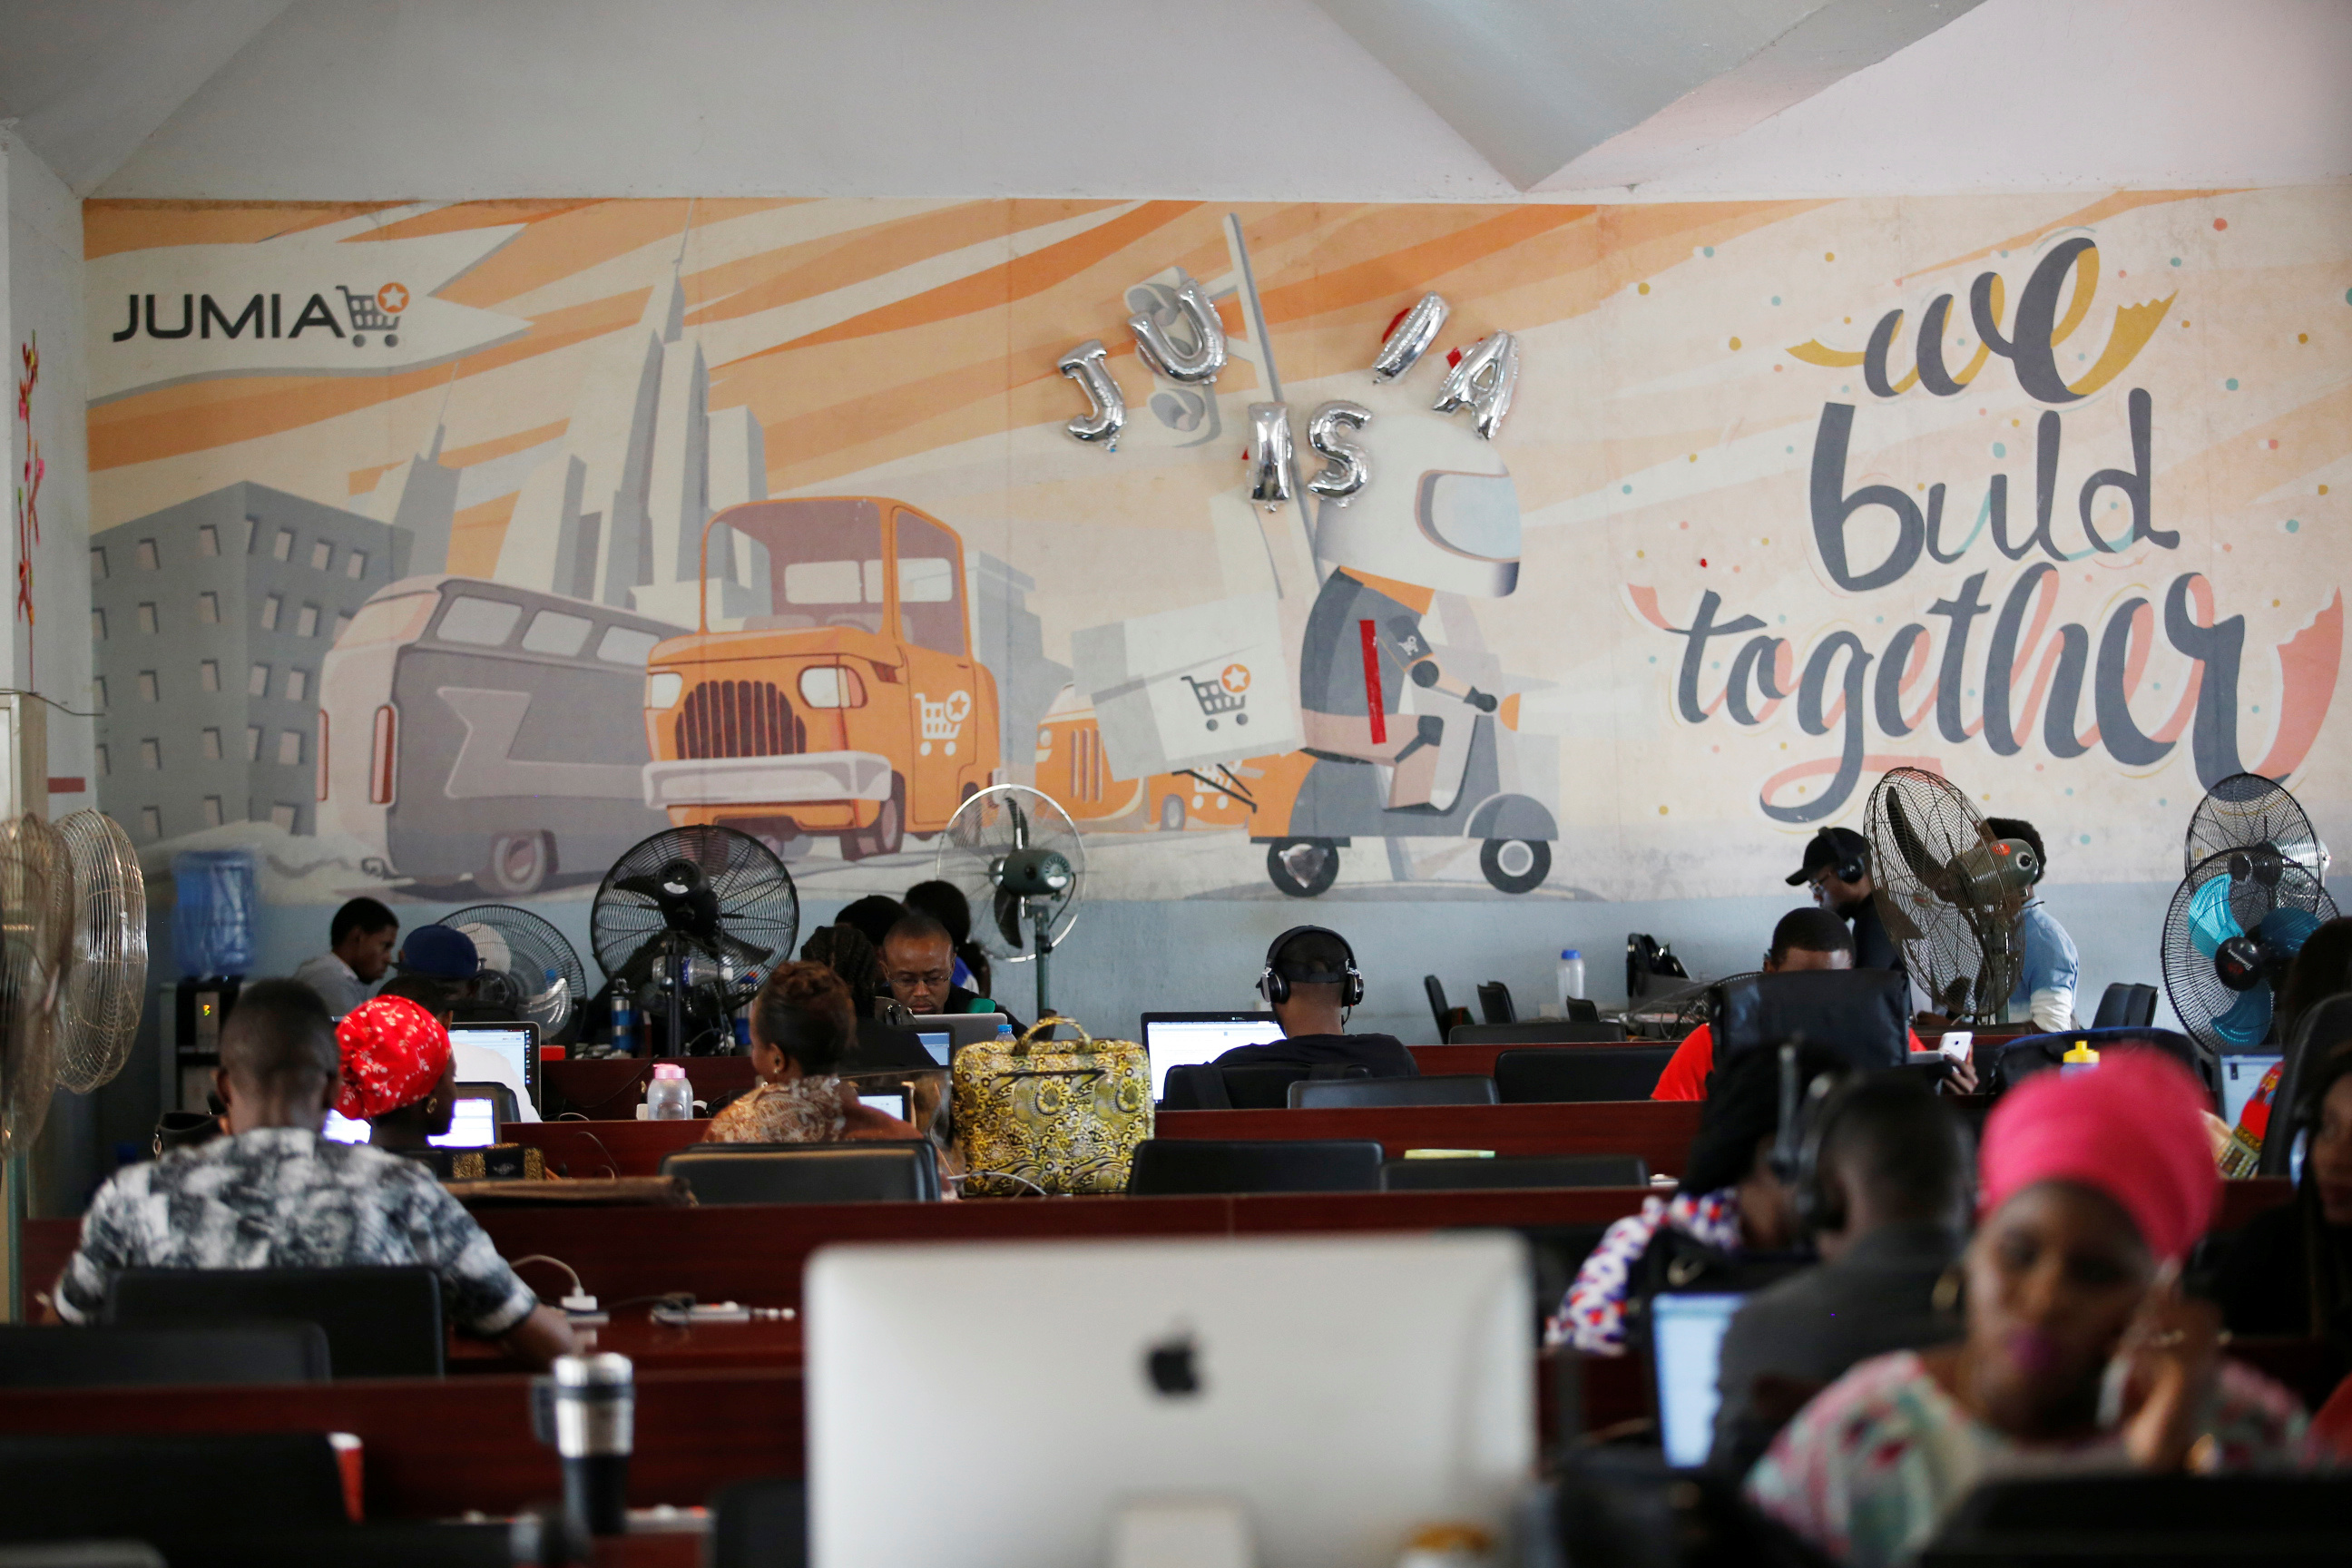 People work on computers at the online store Jumia in Ikeja district, in Nigeria's commercial capital Lagos June 10, 2016.REUTERS/Akintunde Akinleye